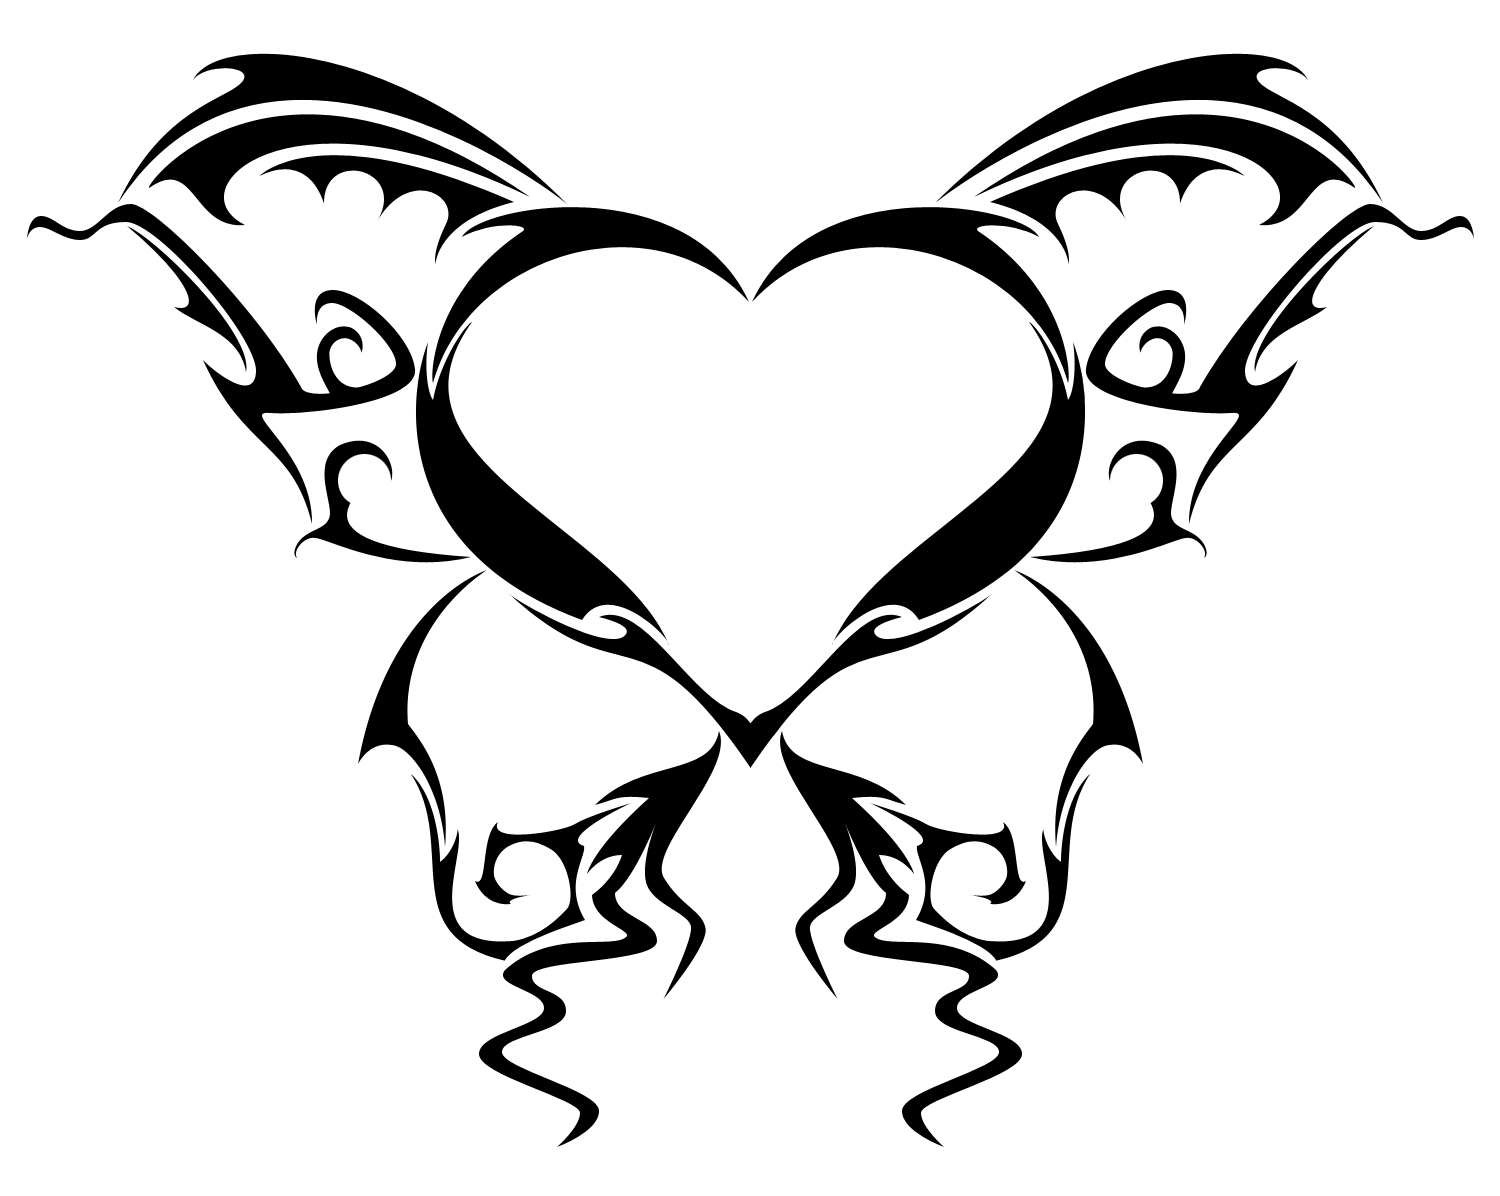 Heart Tattoos Designs Ideas And Meaning Tattoos For You Heart Tattoo Butterfly Tattoo Rose And Butterfly Tattoo